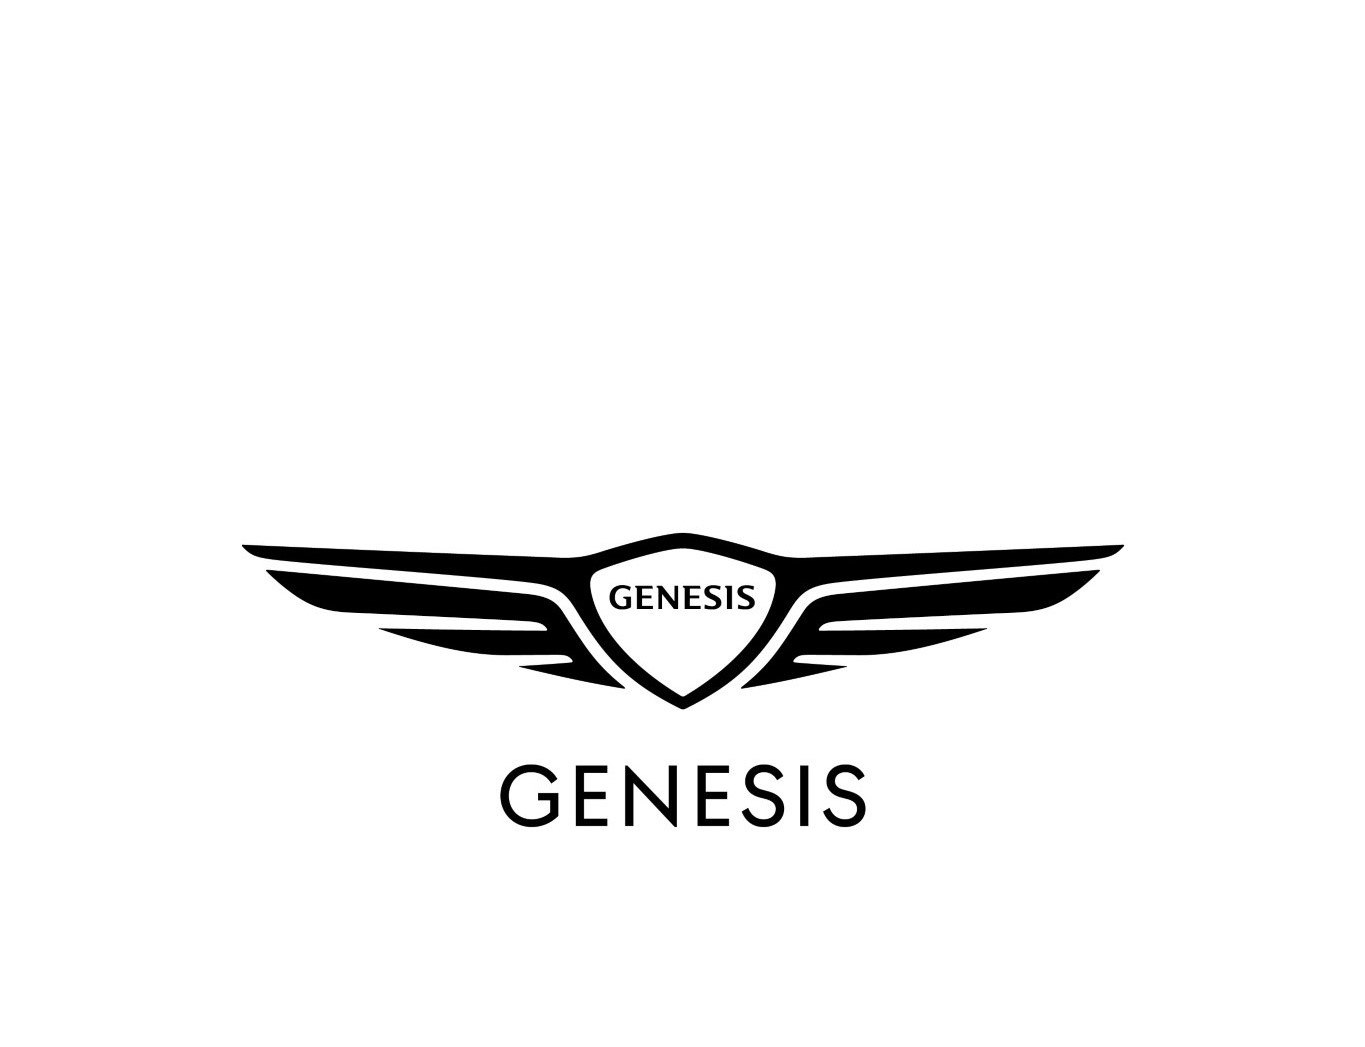 genesis article logo5 (1).jpg